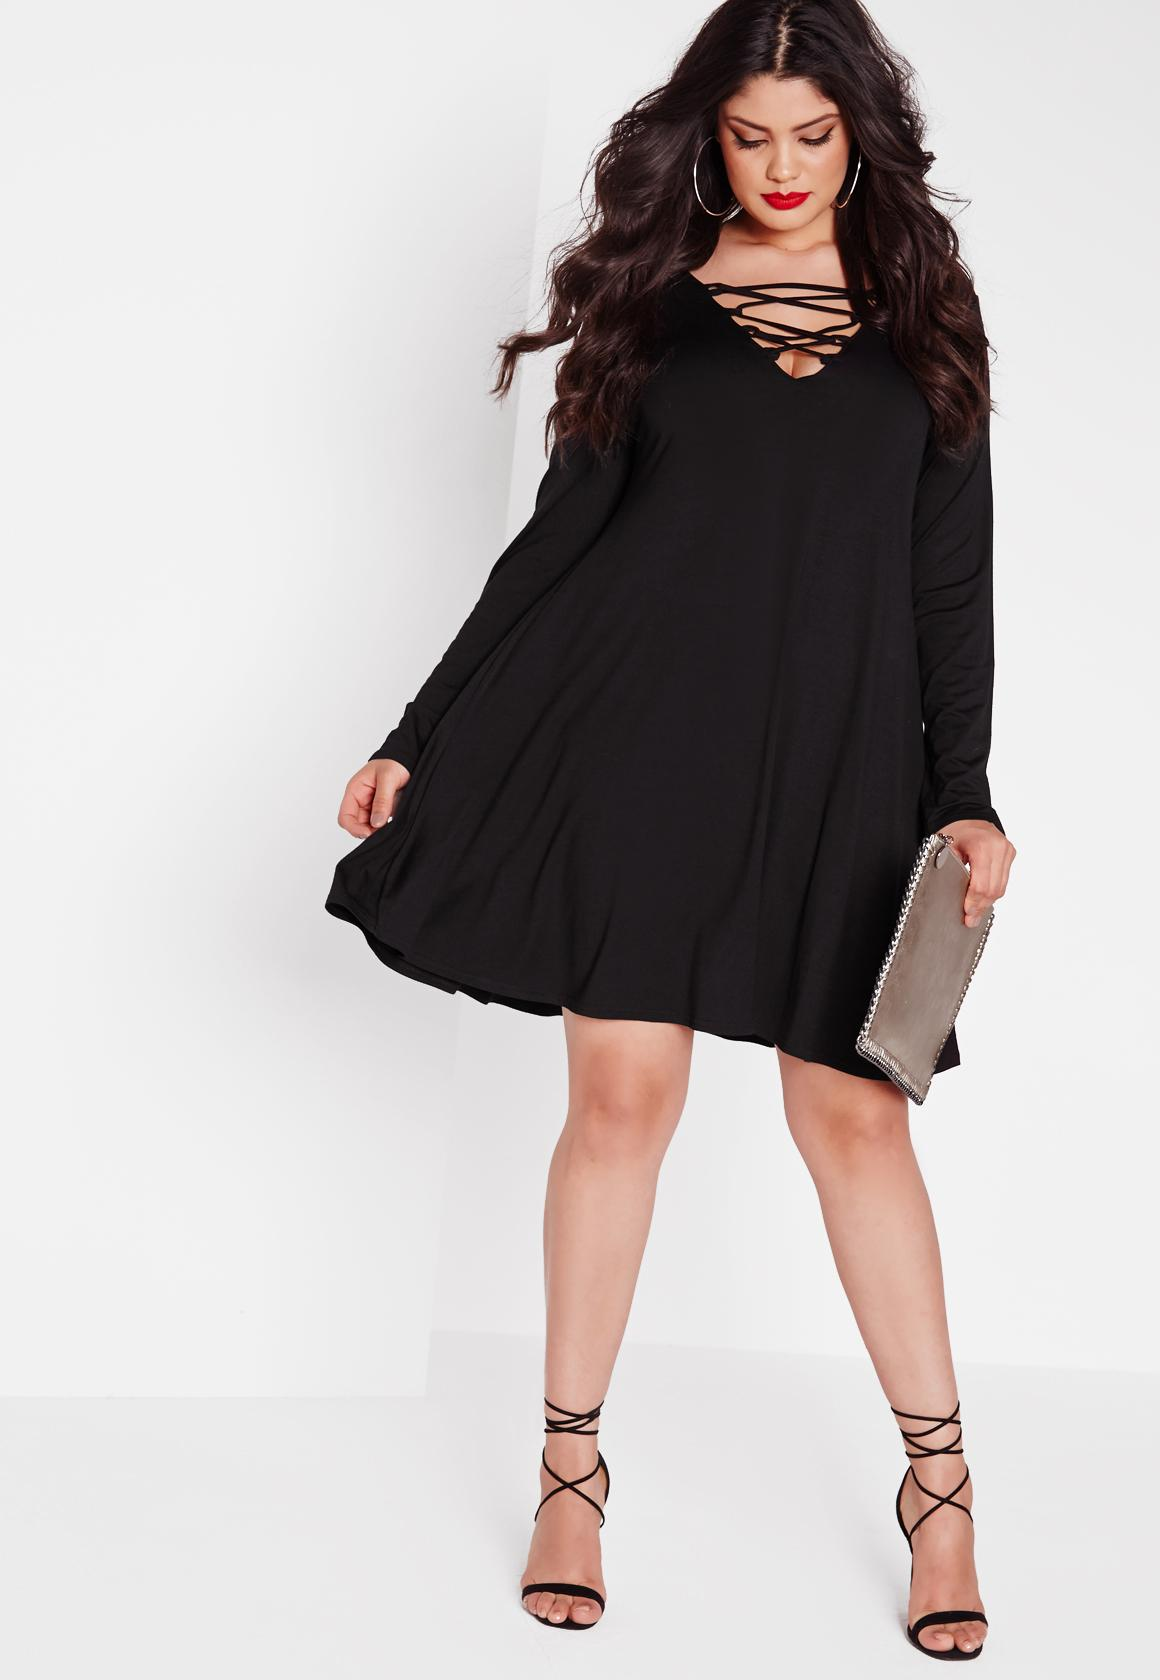 plus size clothing | womens plus size fashion - missguided+